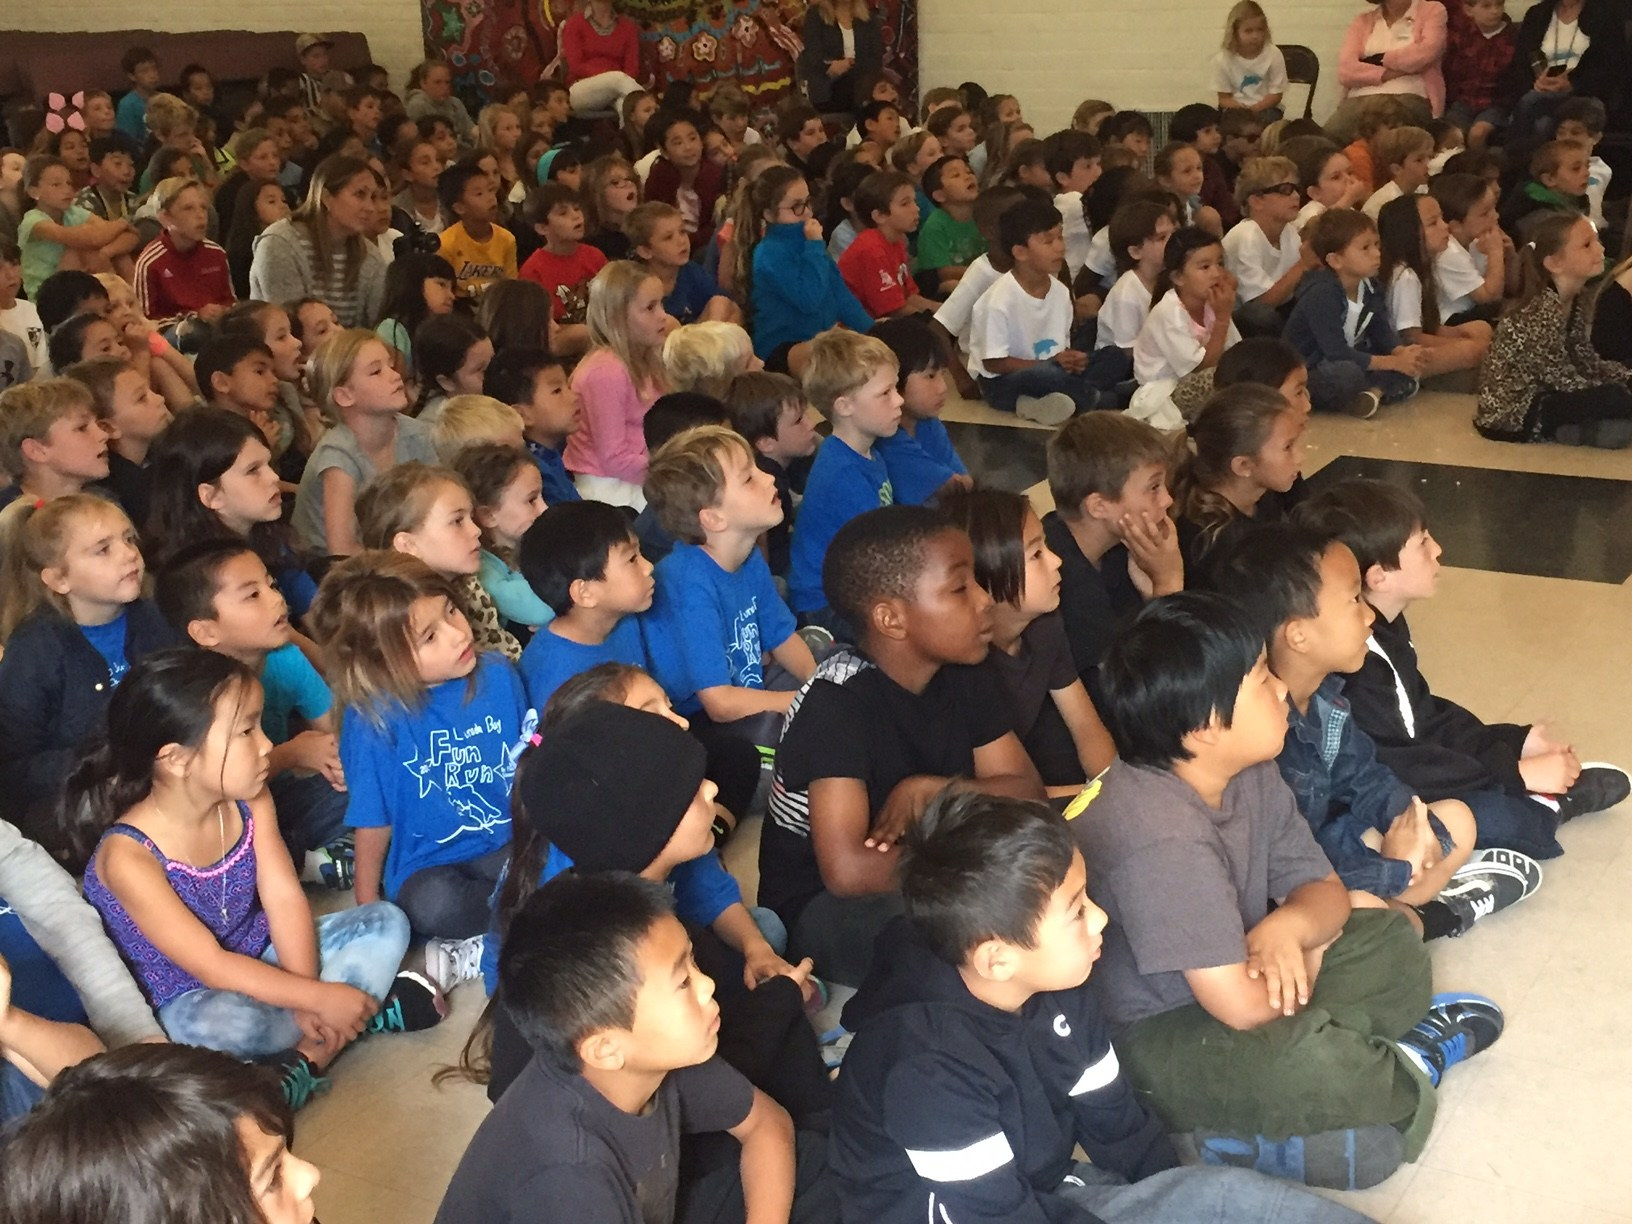 Students watch performance